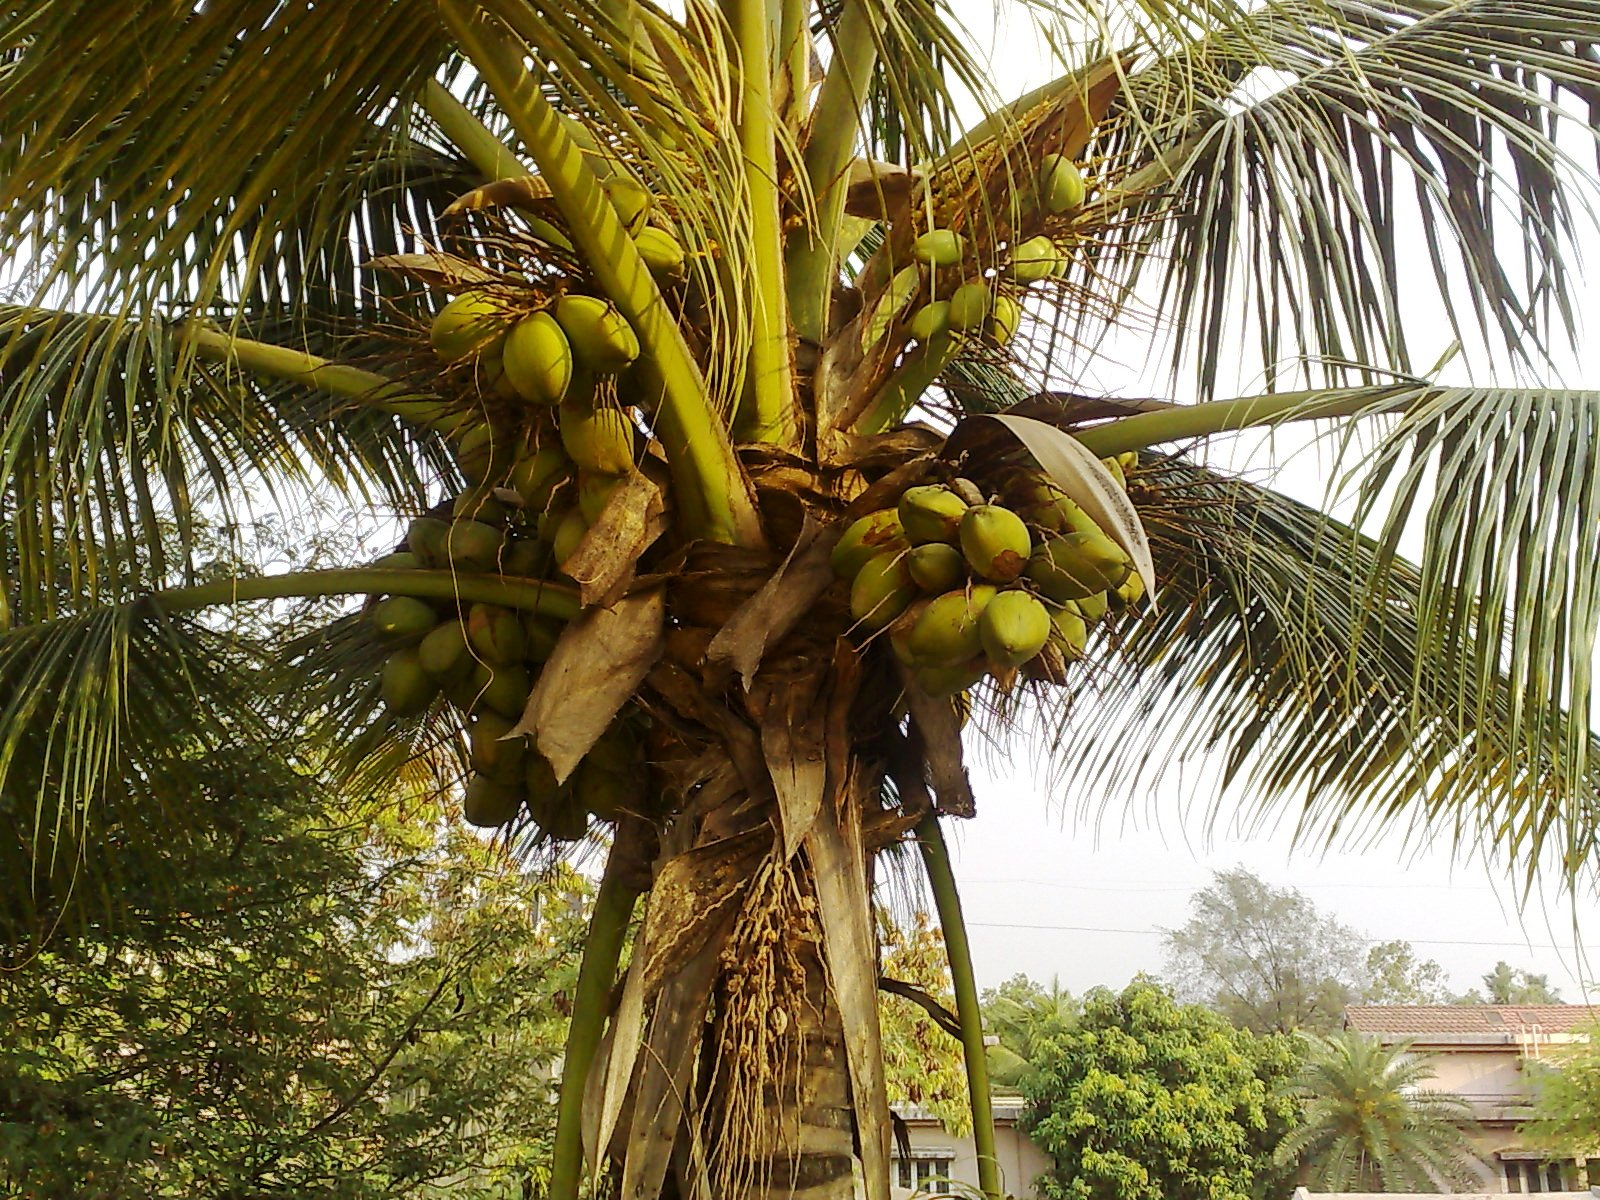 /wp-content/uploads/2020/10/coconut%20tree.jpg